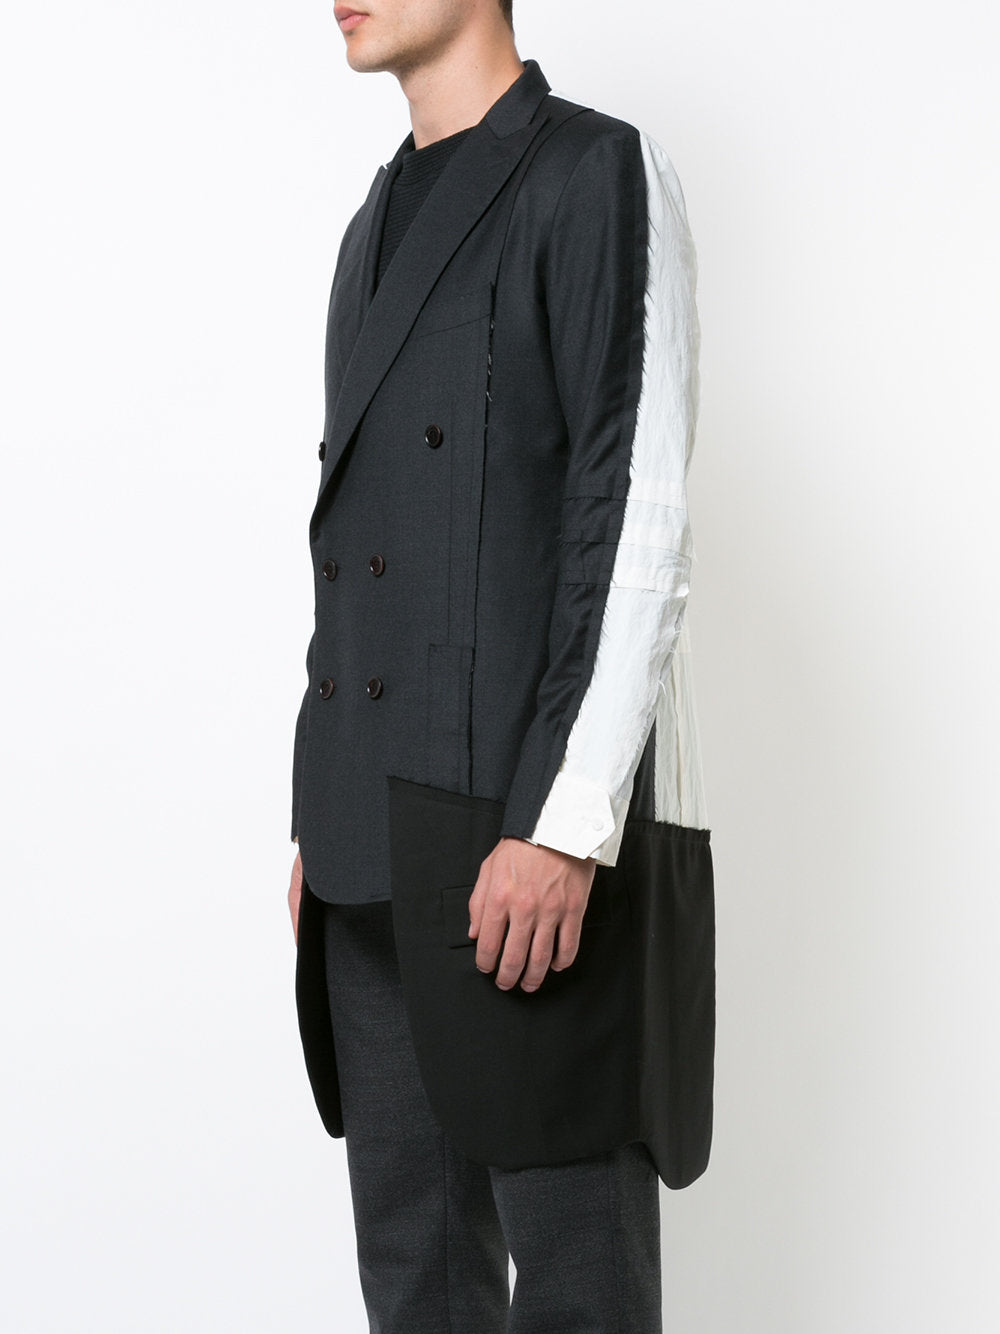 Deconstructed Dinner Jacket | RKJAW17-250